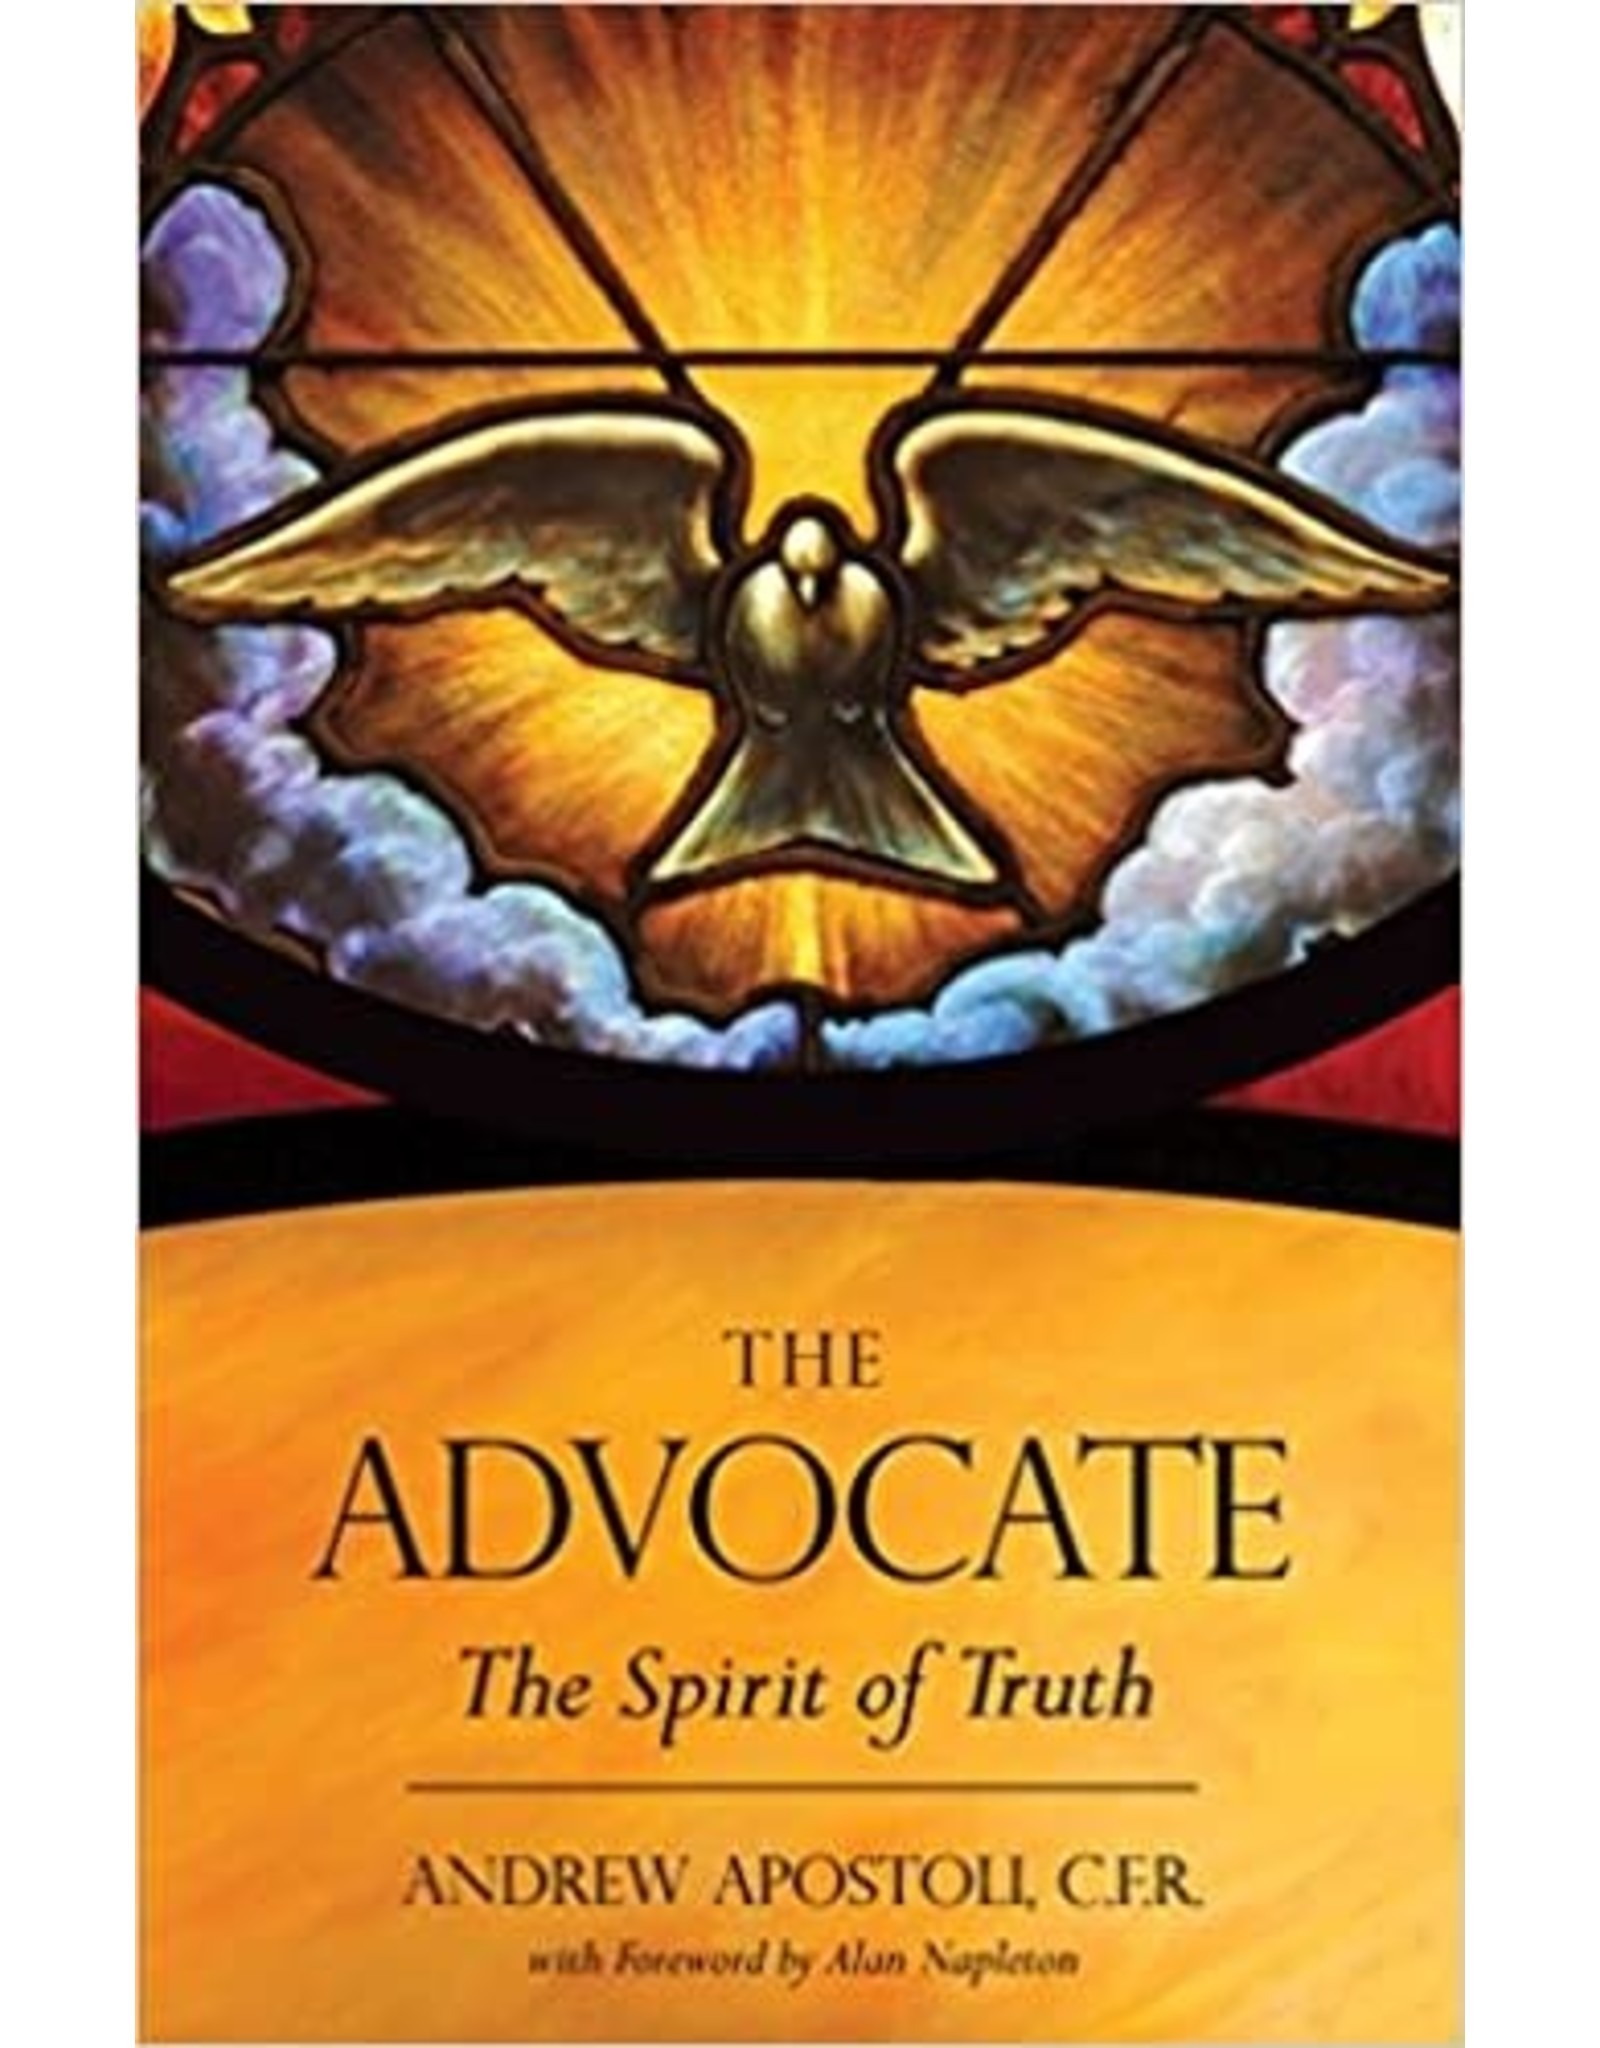 The Advocate: The Spirit of Truth